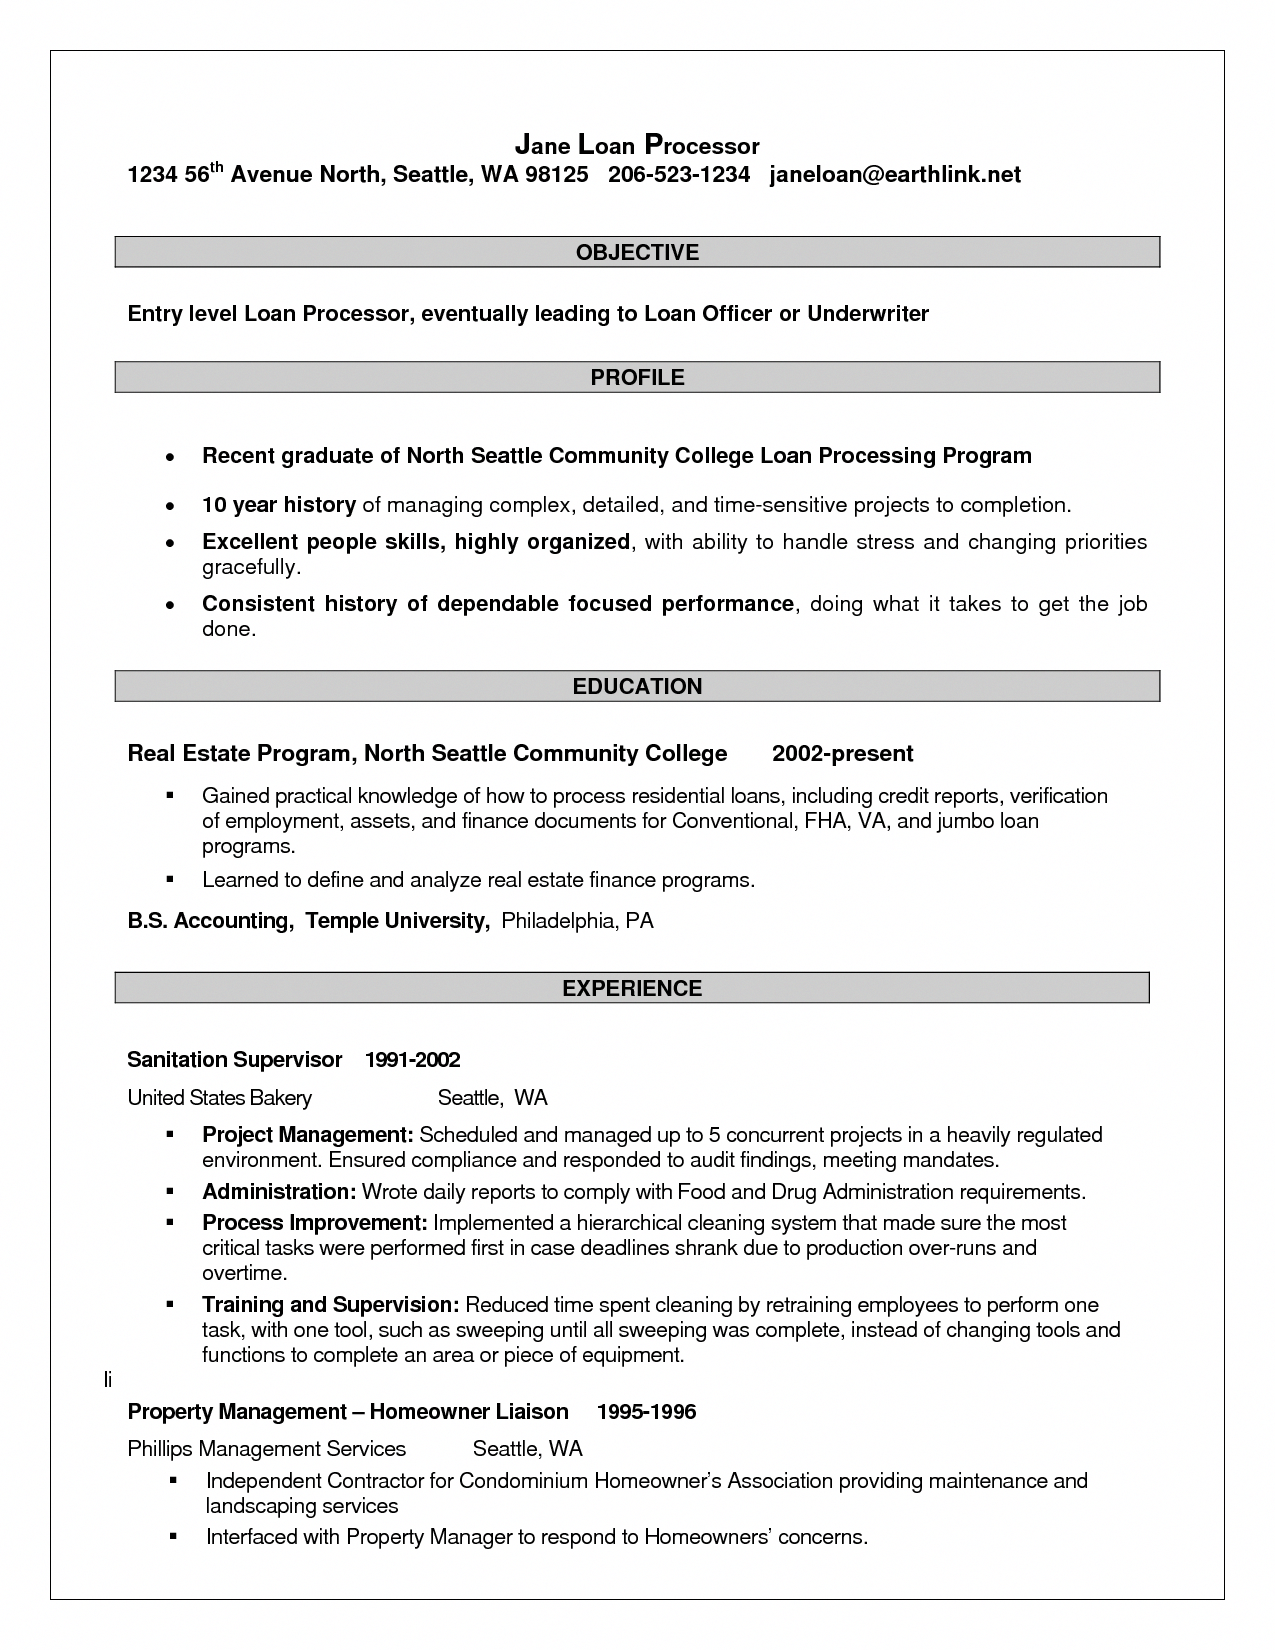 Resume For Loan Processor DiscountMortgagePoints